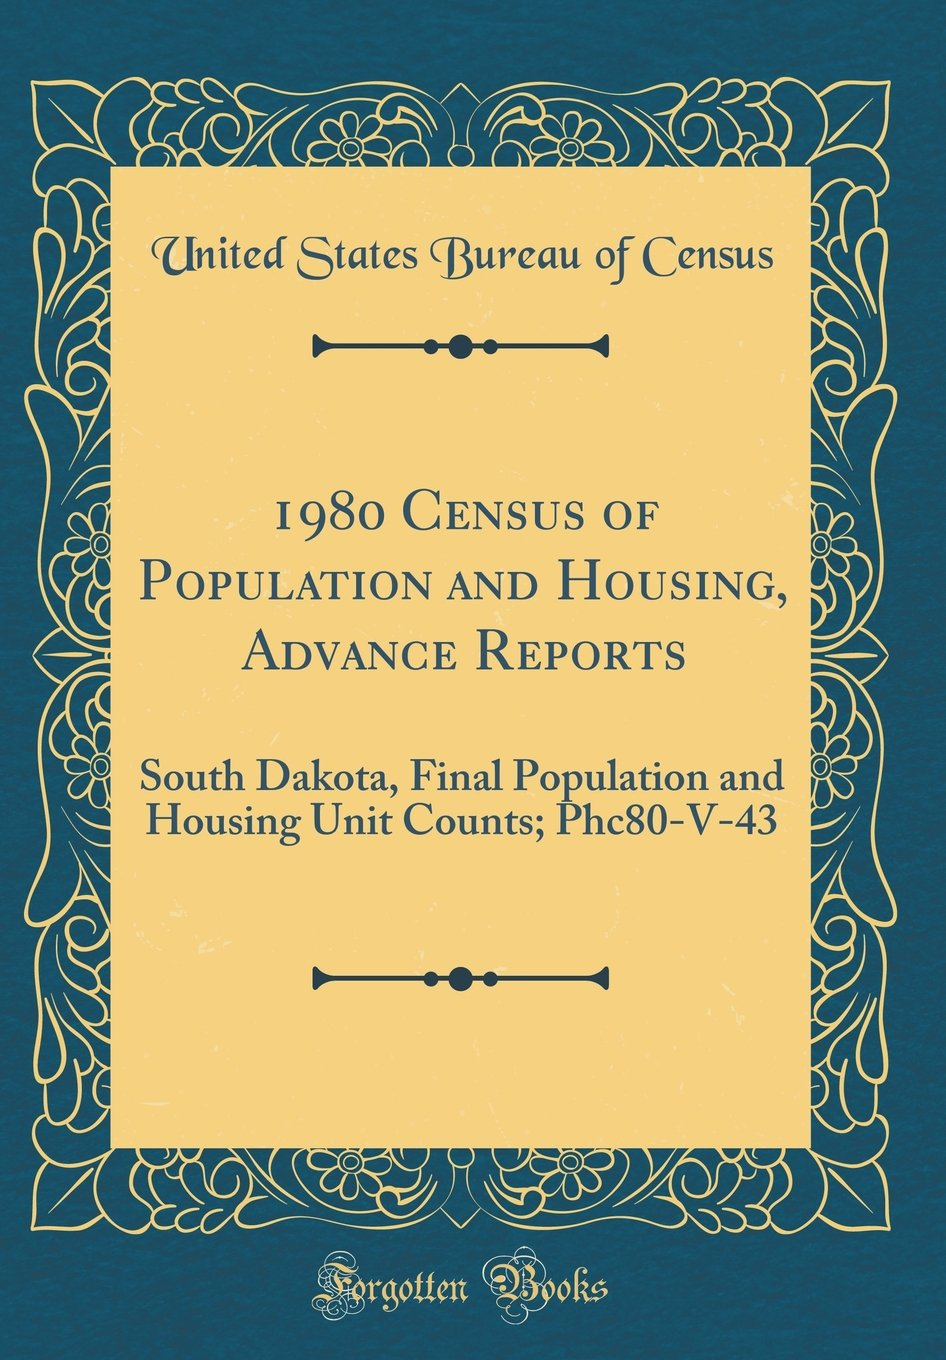 Download 1980 Census of Population and Housing, Advance Reports: South Dakota, Final Population and Housing Unit Counts; Phc80-V-43 (Classic Reprint) ebook